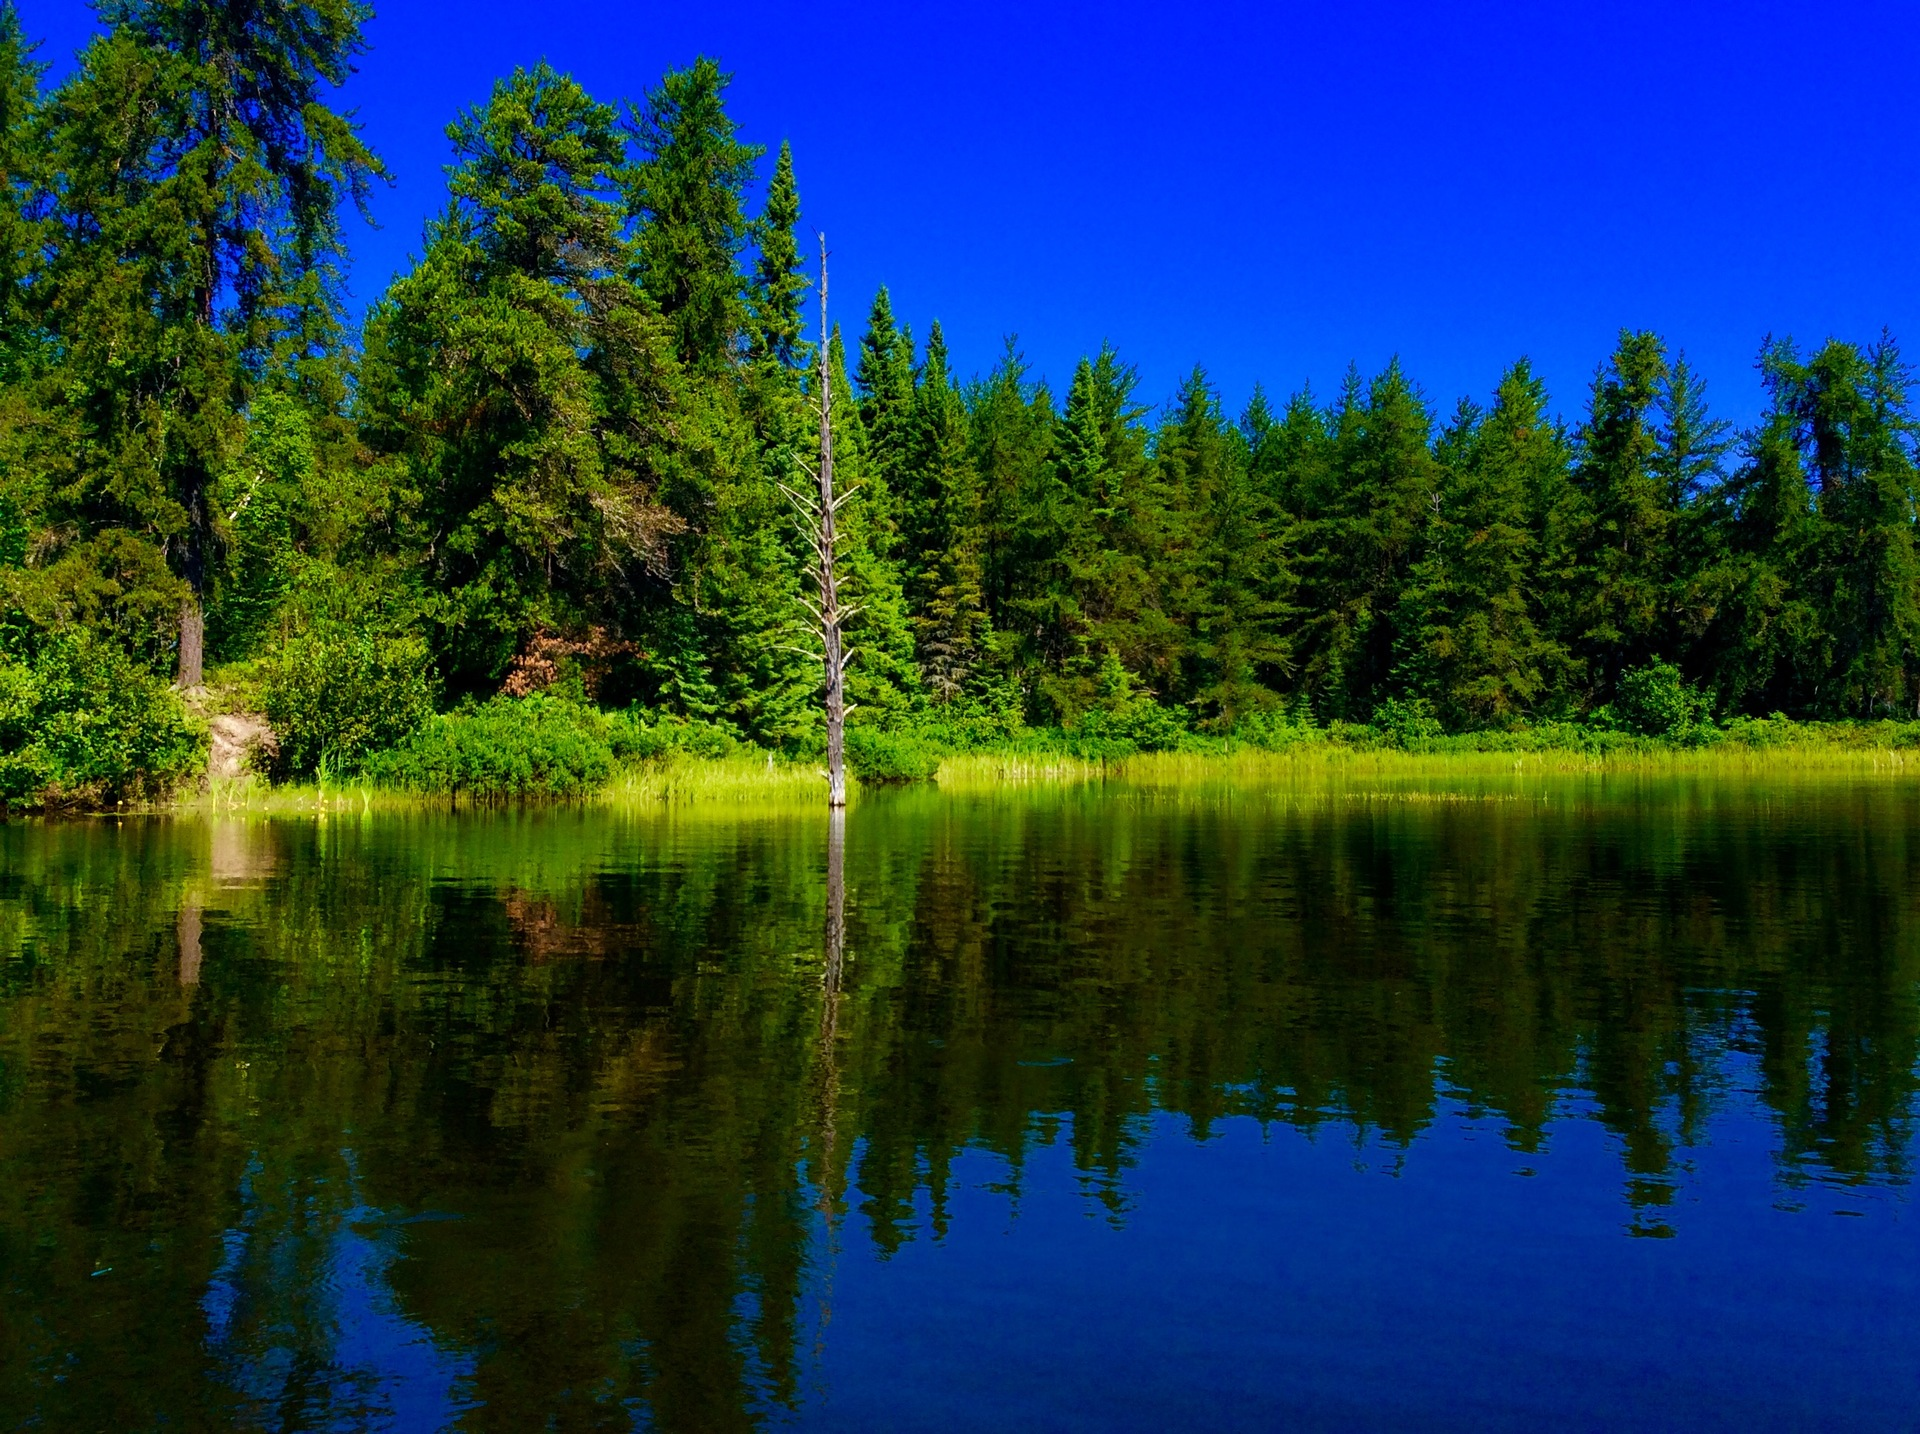 Trees reflecting on the lake